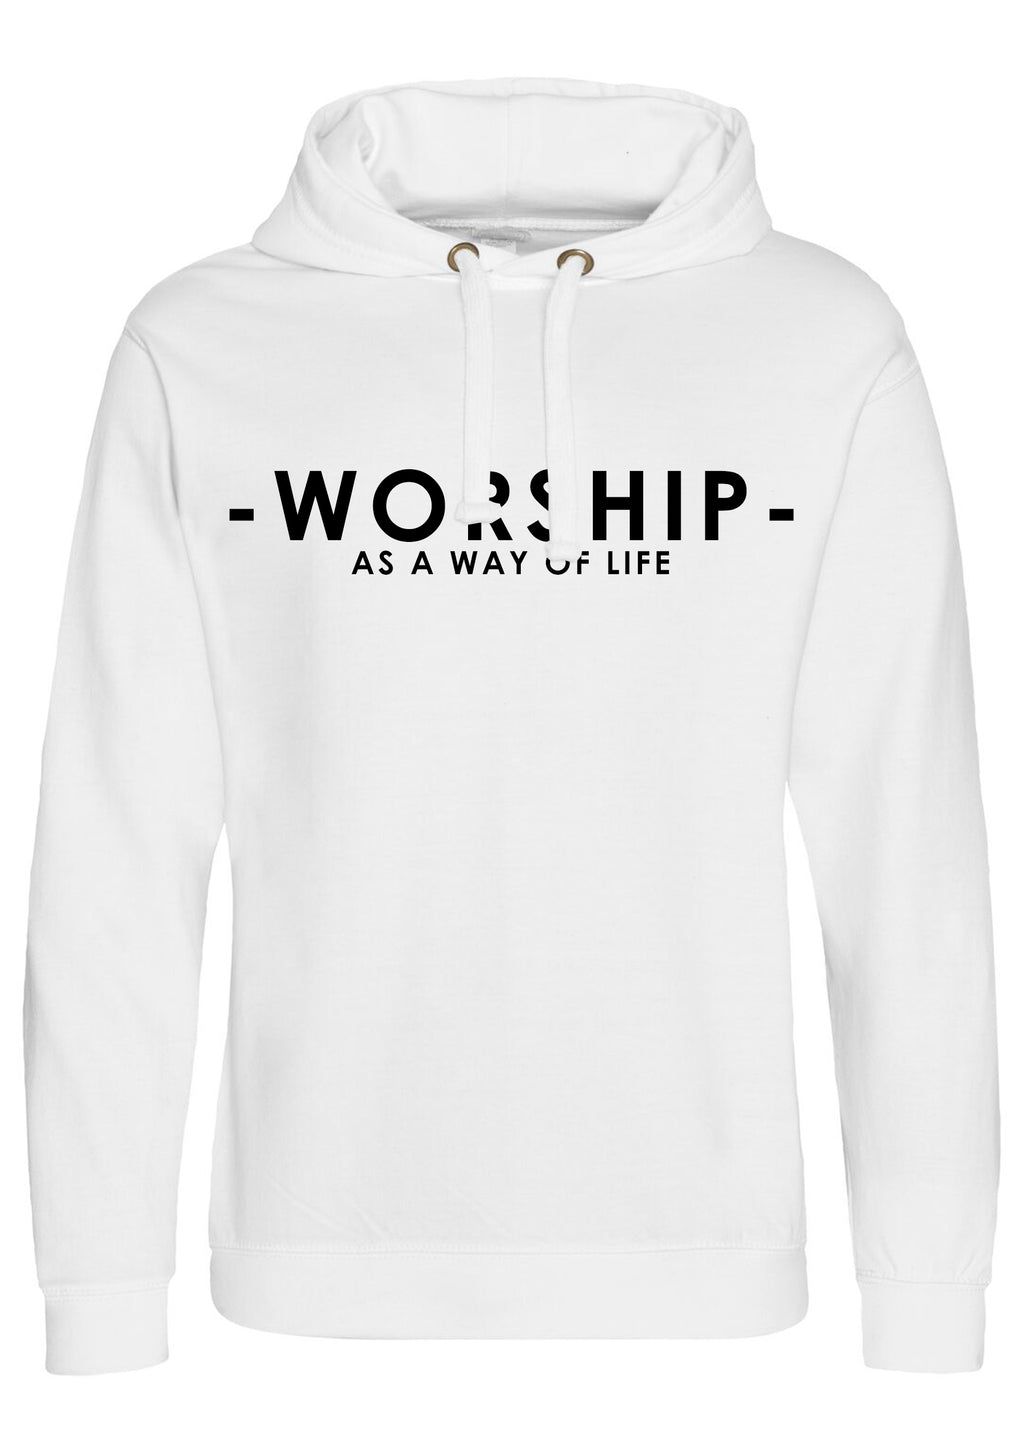 Women's WORSHIP Oversized Pullover Hoodie (White)